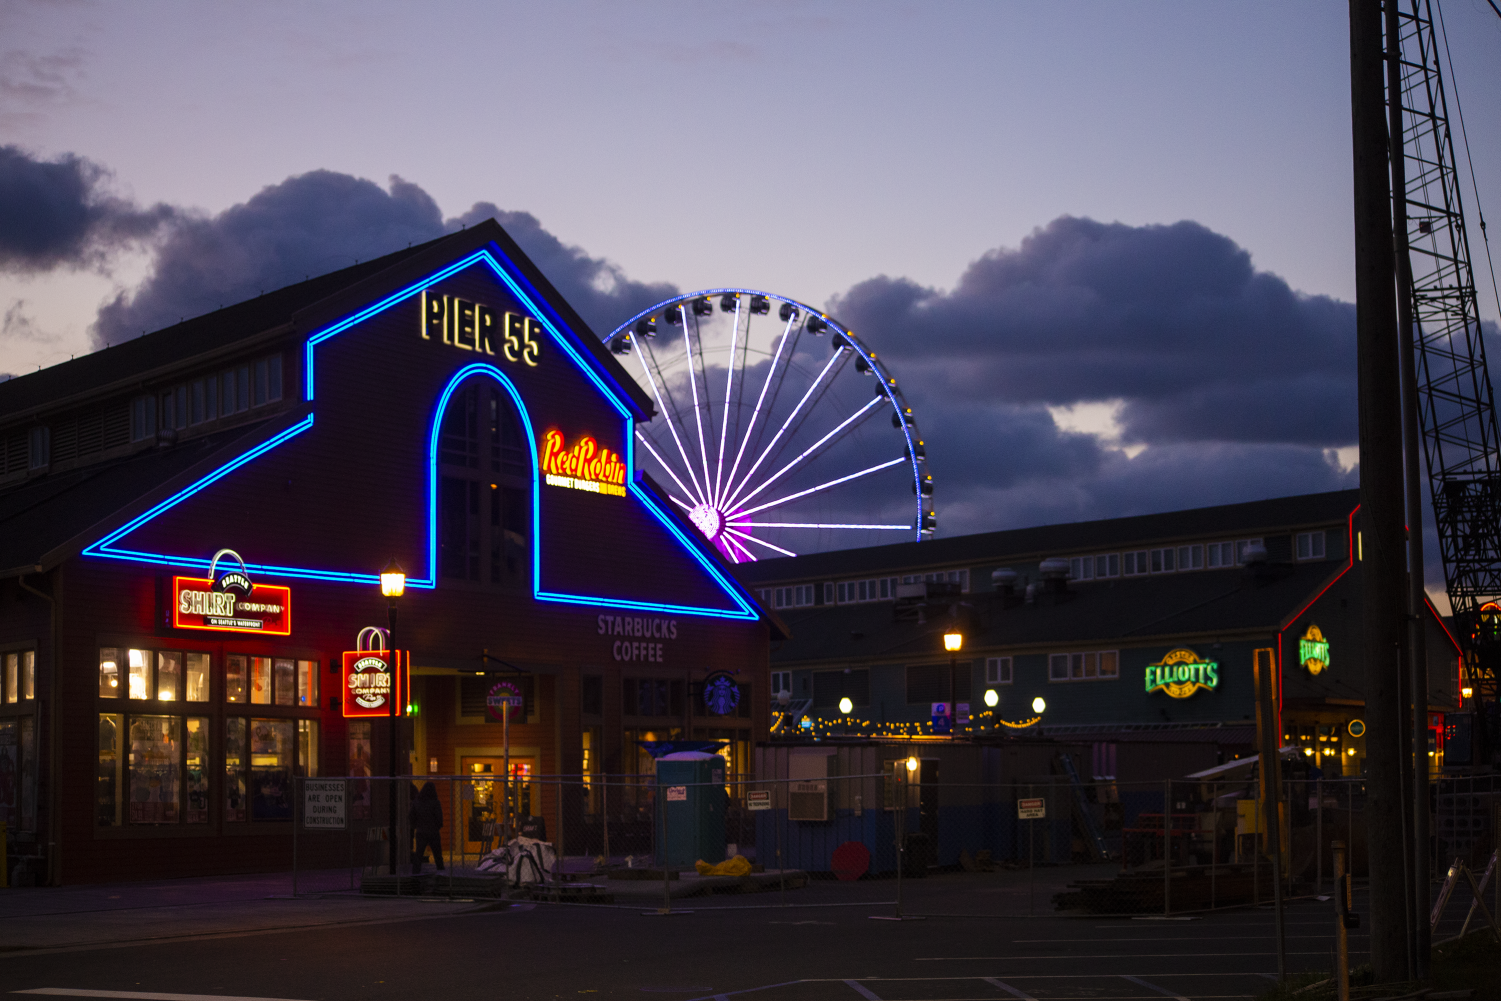 NIGHT AT PIER 55: Pier 55 is one of the many popular destinations in Seattle and is home to restaurants, the Seattle Great Wheel, and the Seattle aquarium.